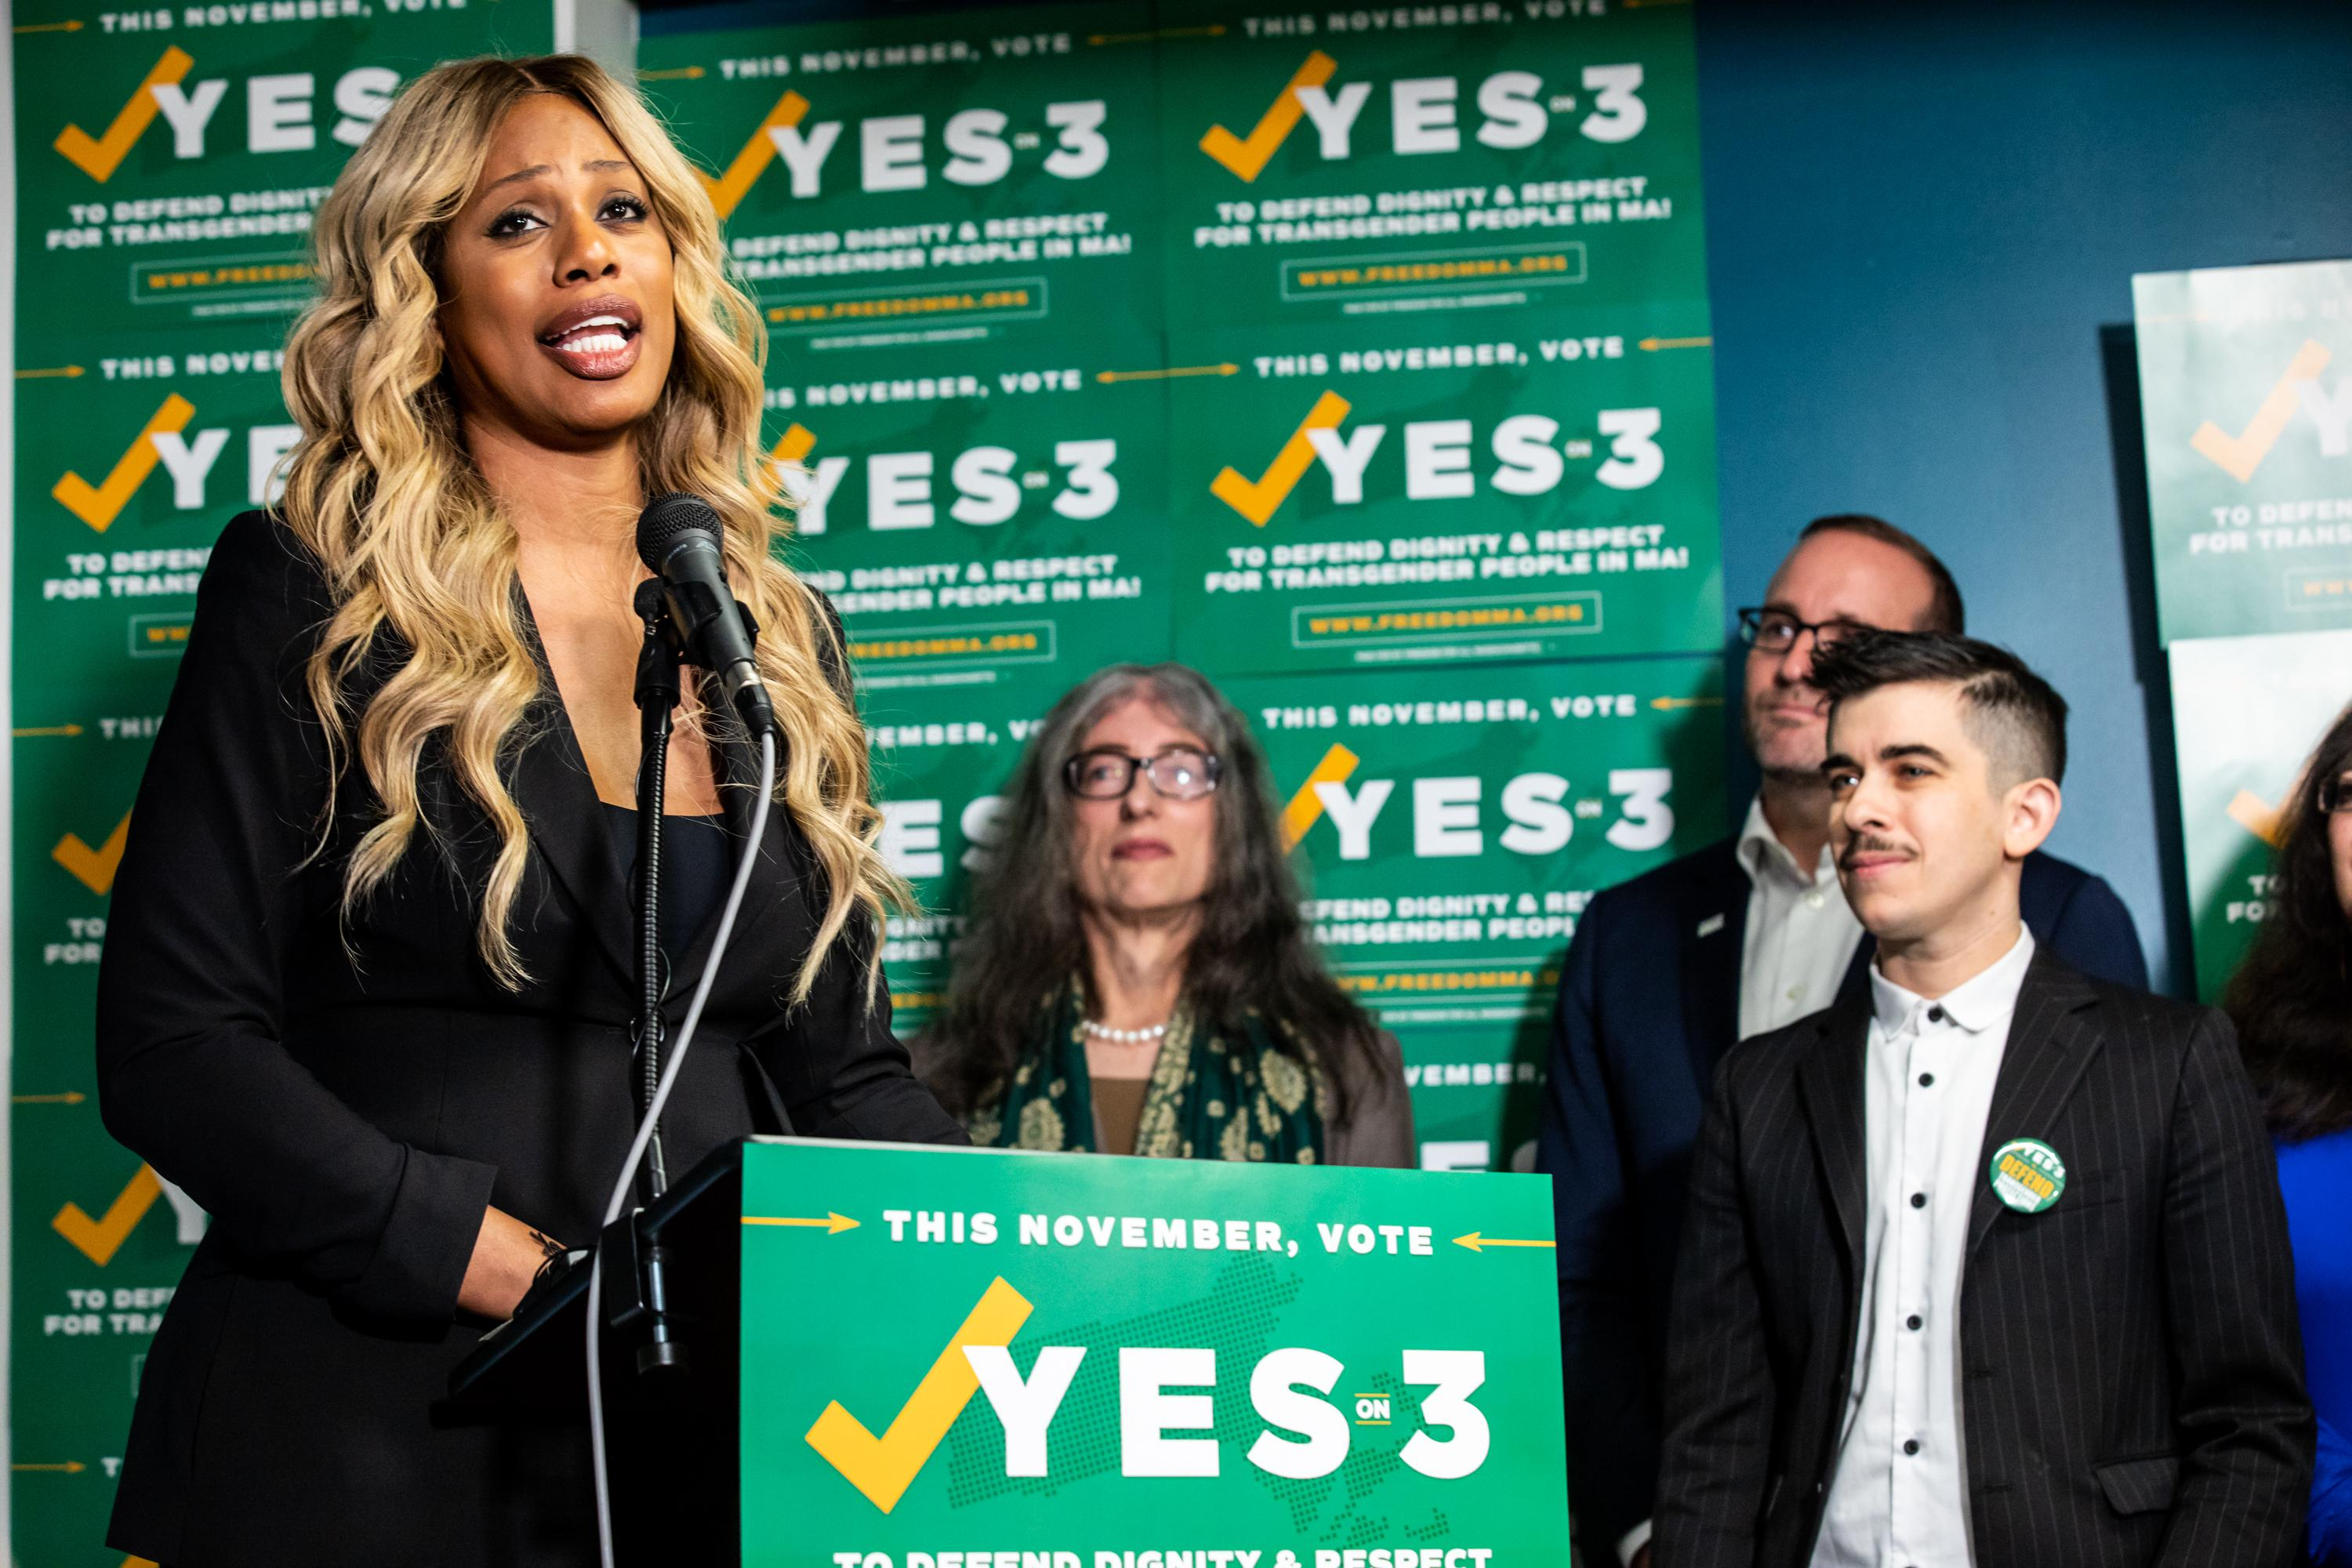 Laverne Cox speaks at a lectern with other activists.